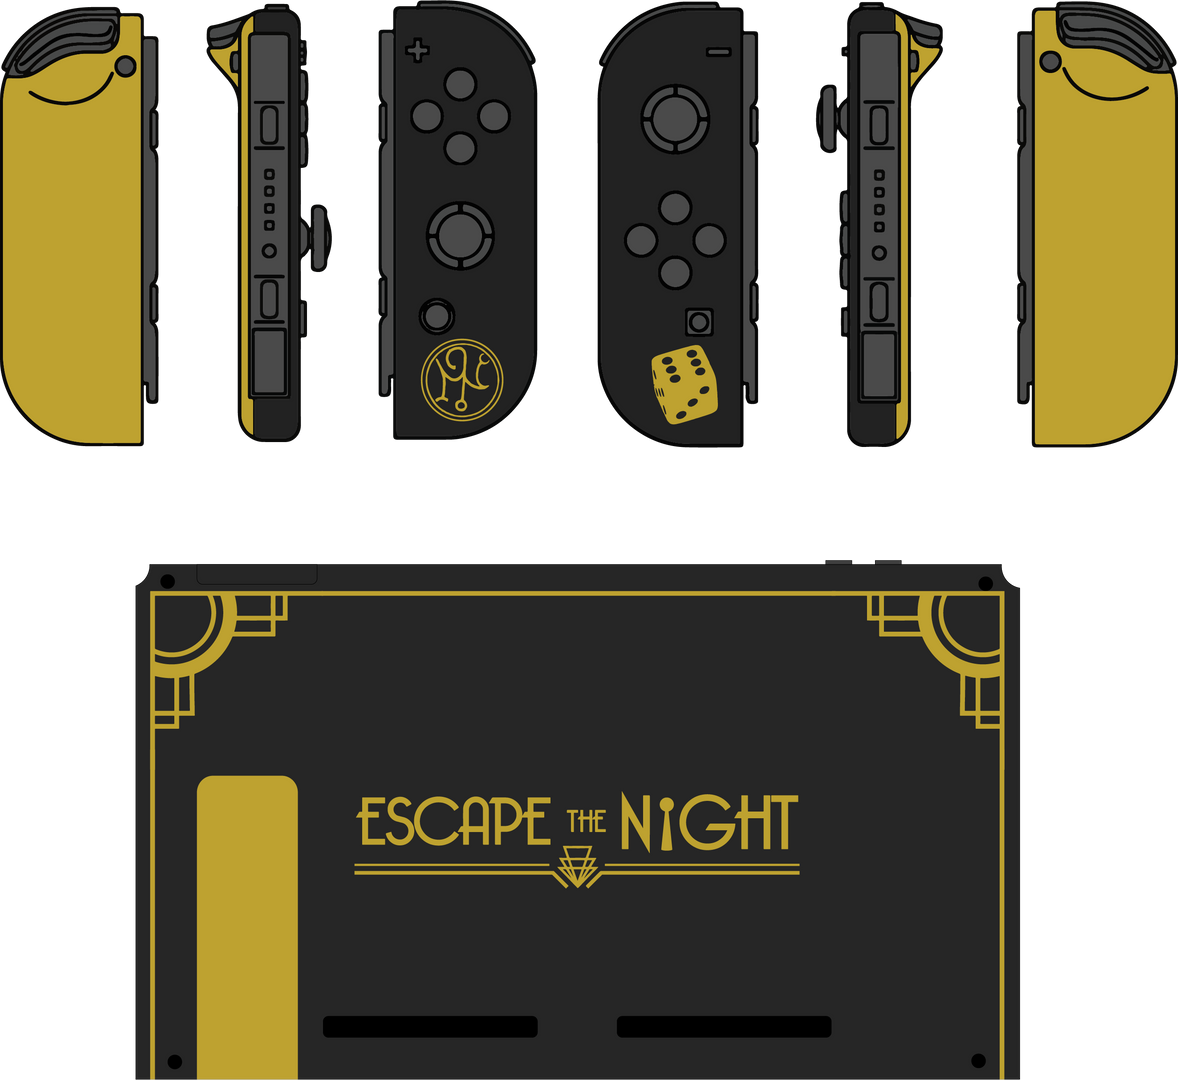 Escape the Night Console Mock-Up